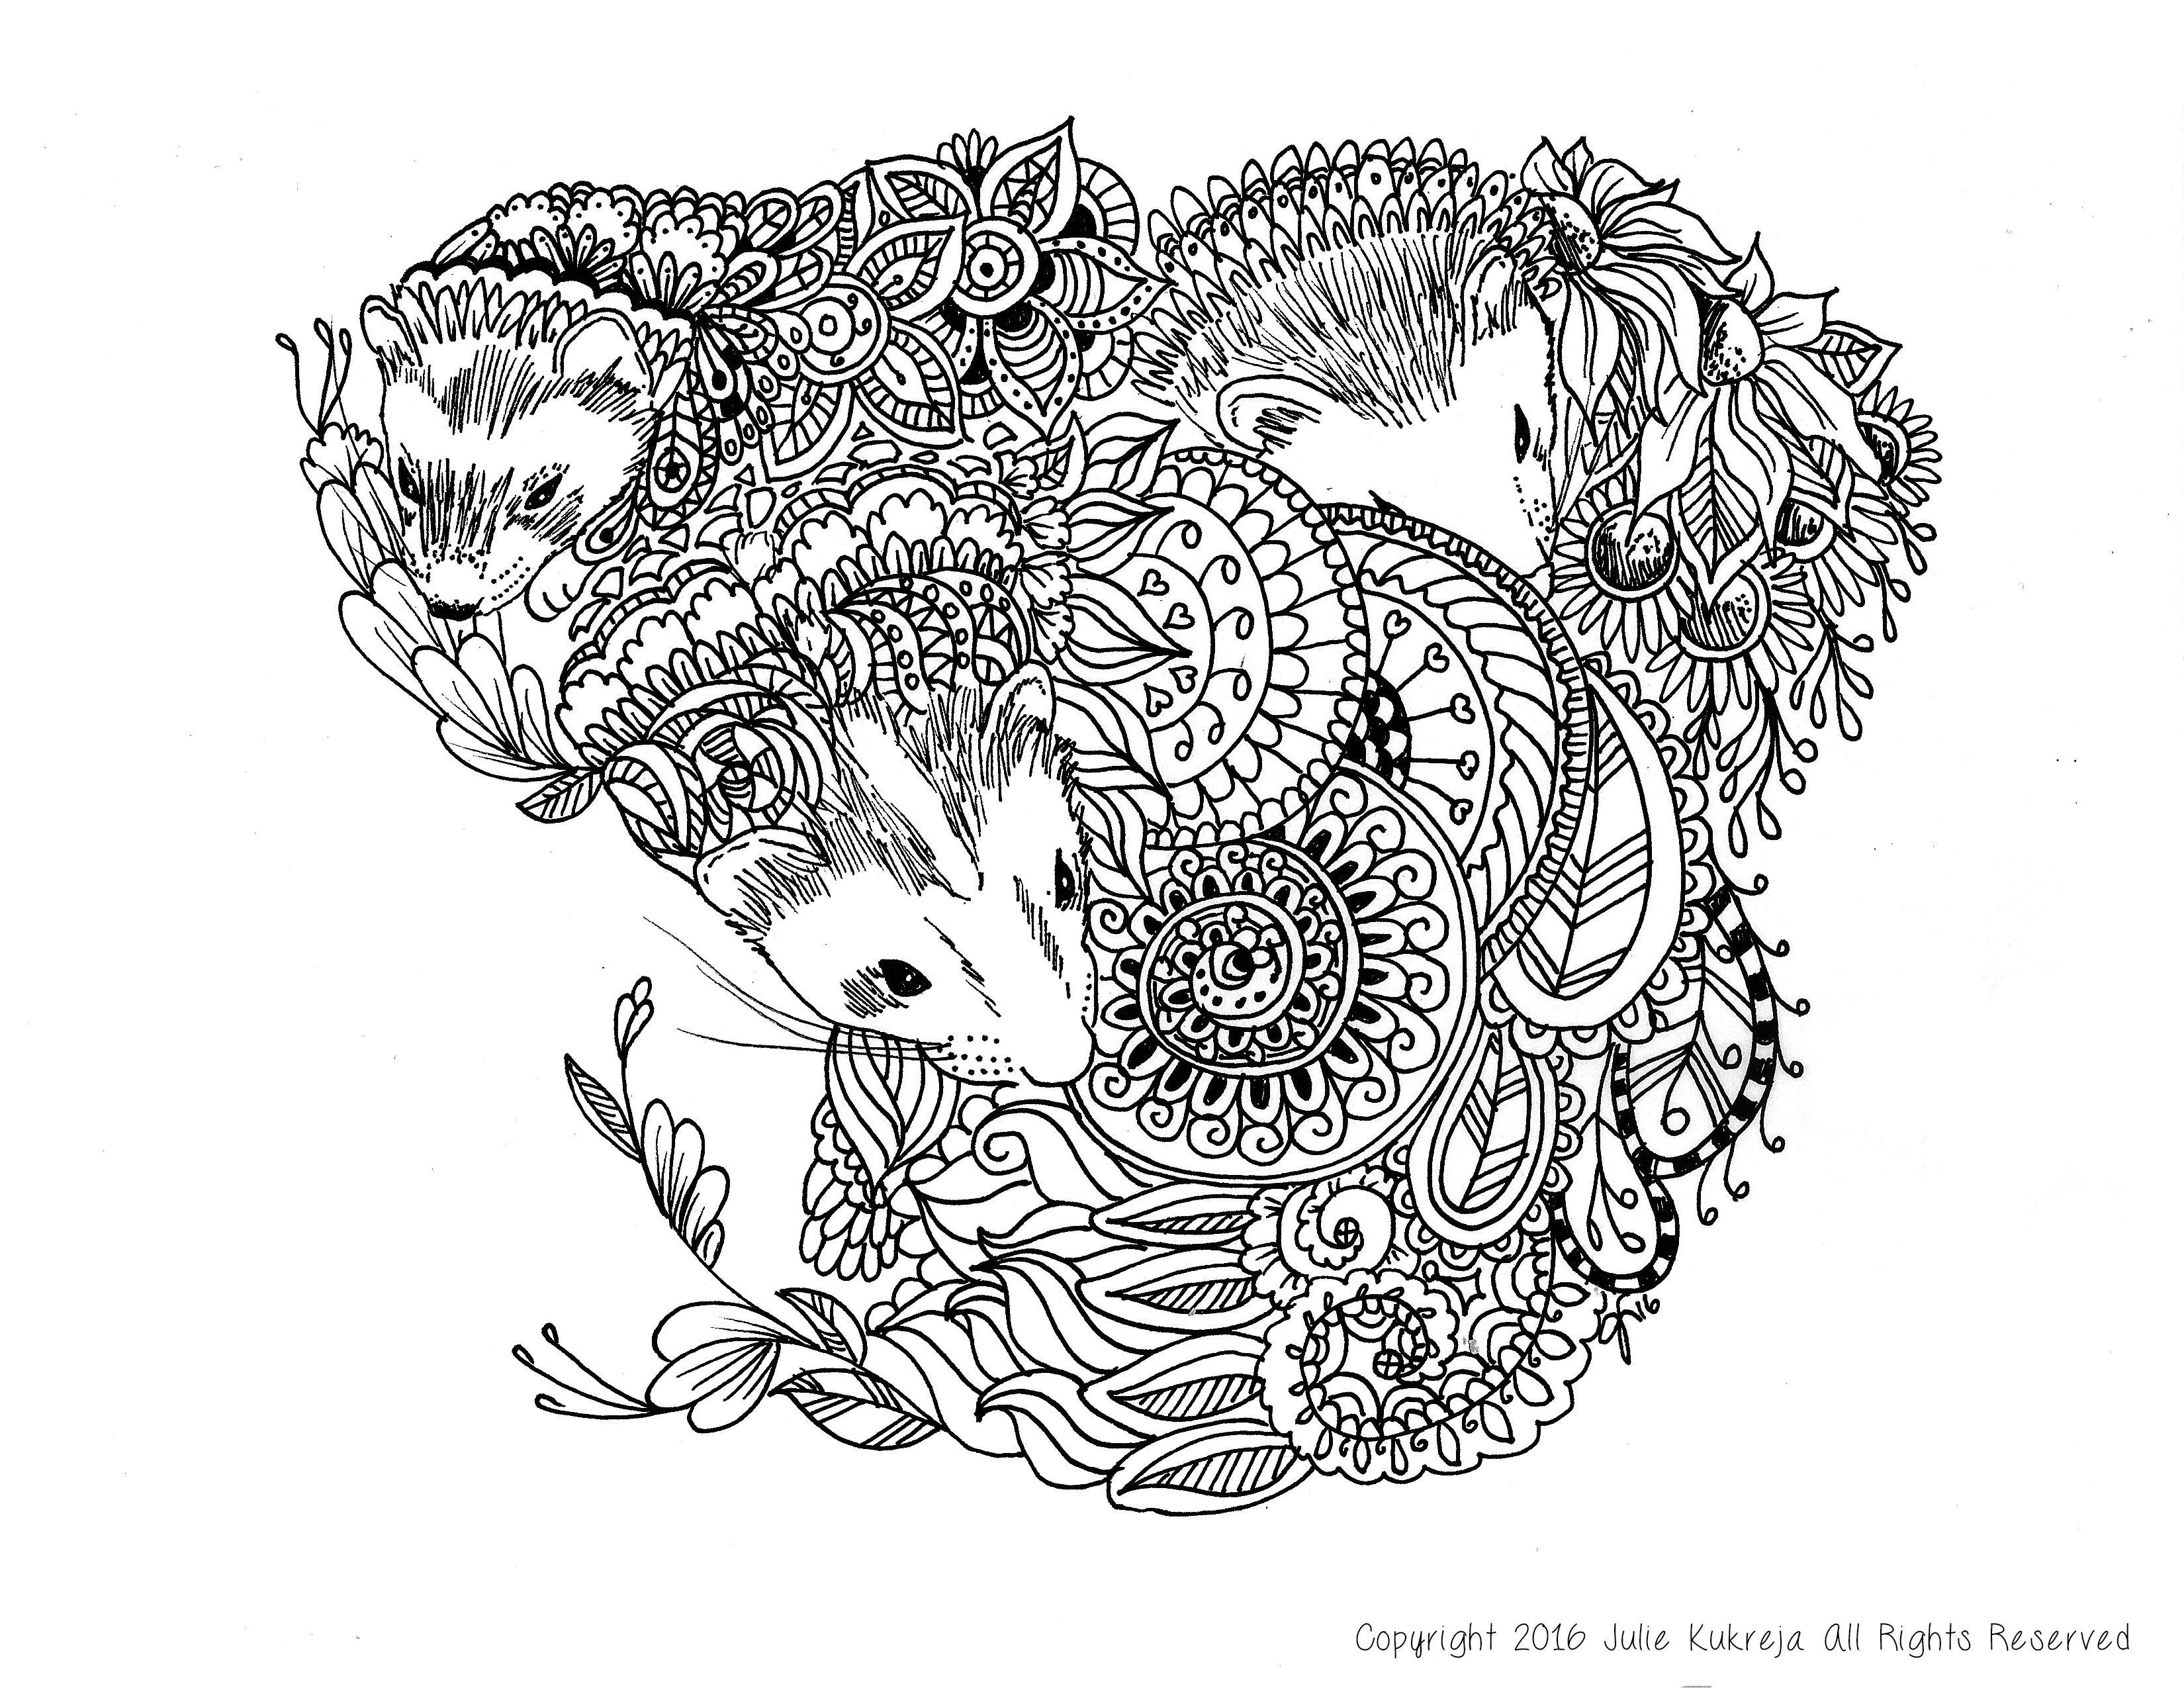 Custom Pet Portrait Coloring Book Page Ferrets By Julie Kukreja Have Your Own Created Contact Julie Penandmo Cool Artwork Custom Pet Portraits Pet Portraits [ 2550 x 3300 Pixel ]